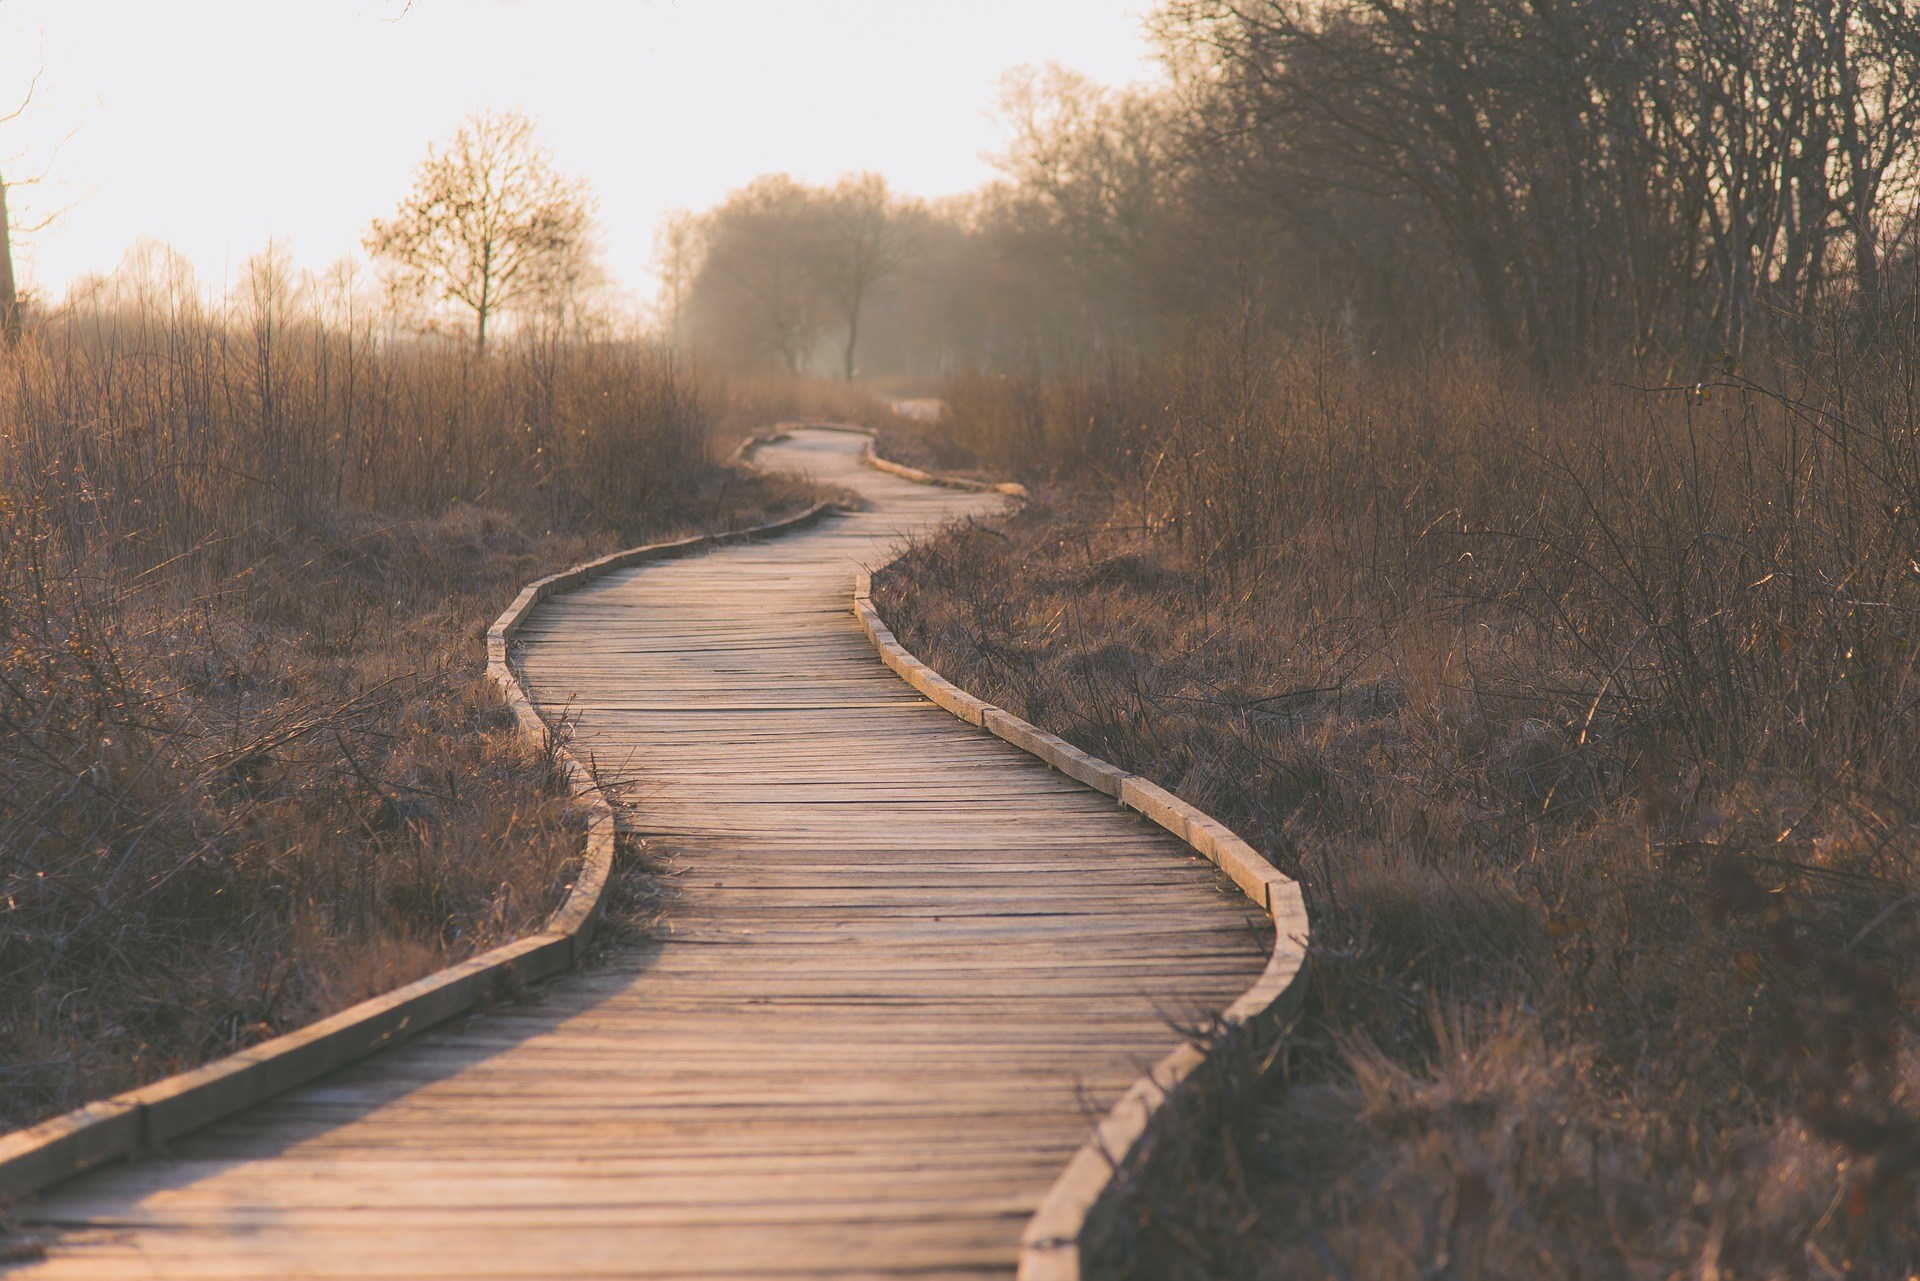 MINDFULNESS PRACTICES TO SUPPORT YOU ALONG THE MANY PATHS OF YOUR LIFE JOURNEY -